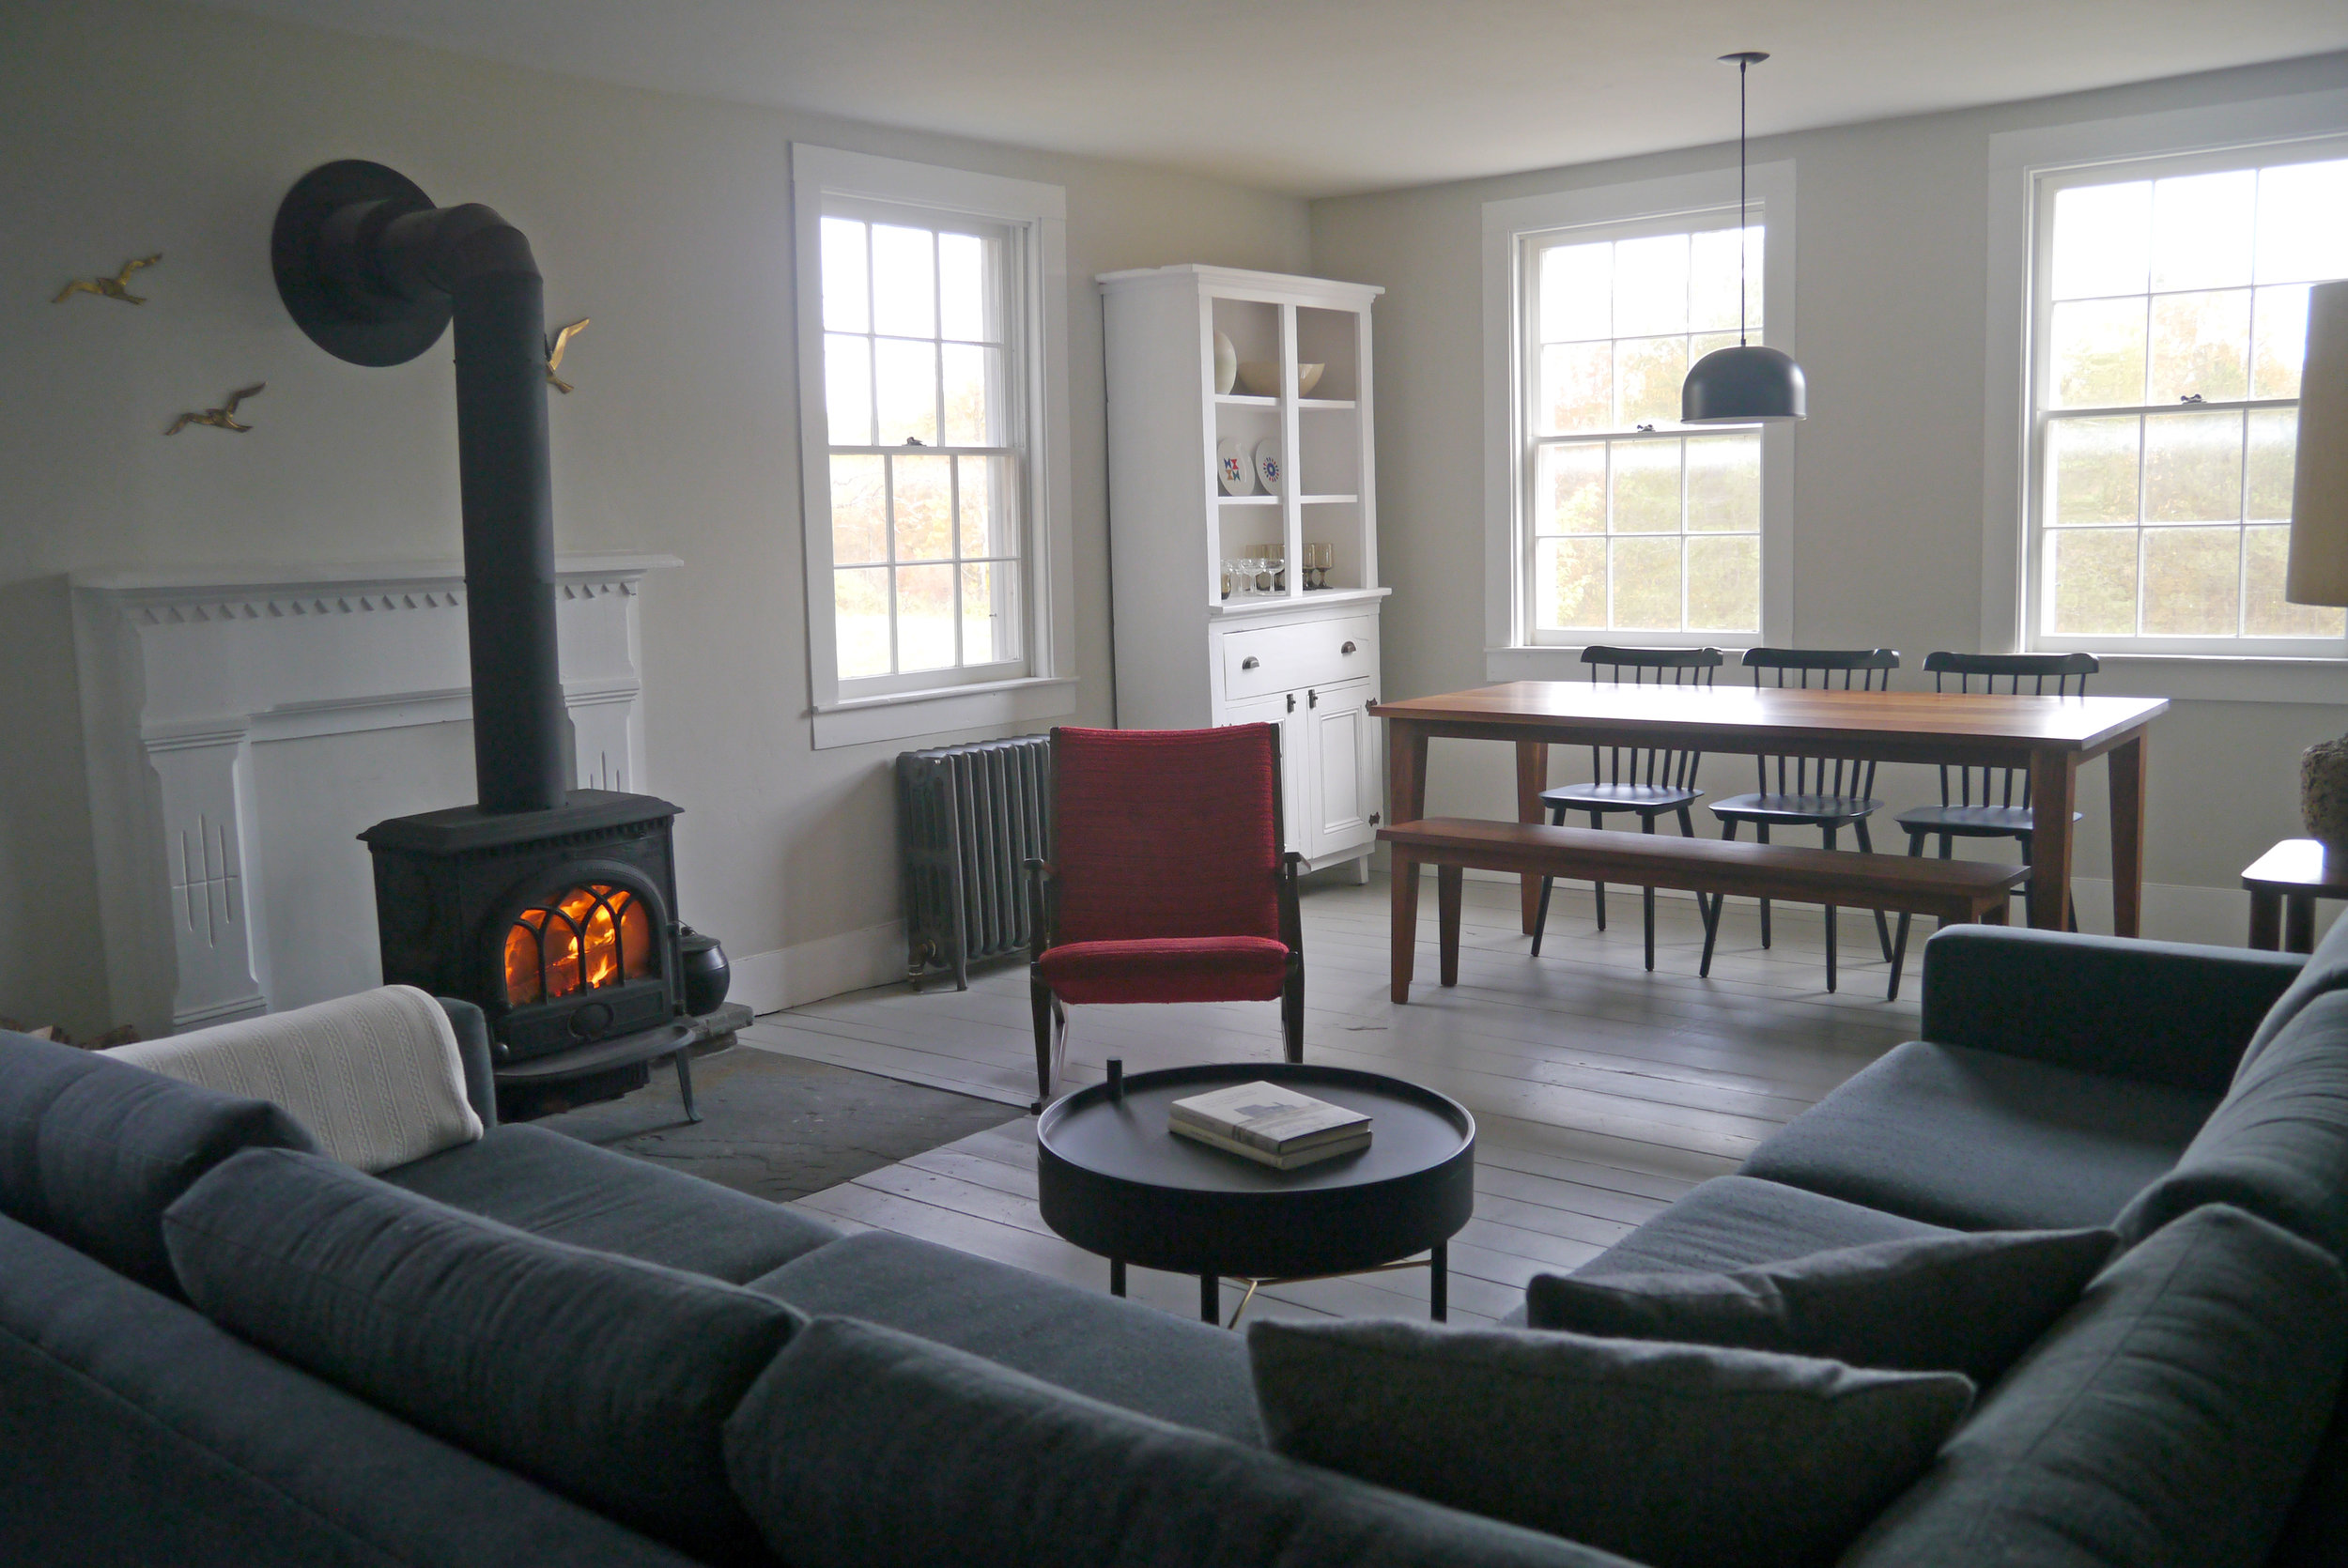 Living Room - Includes dining area with a long farm table that seats up to 8